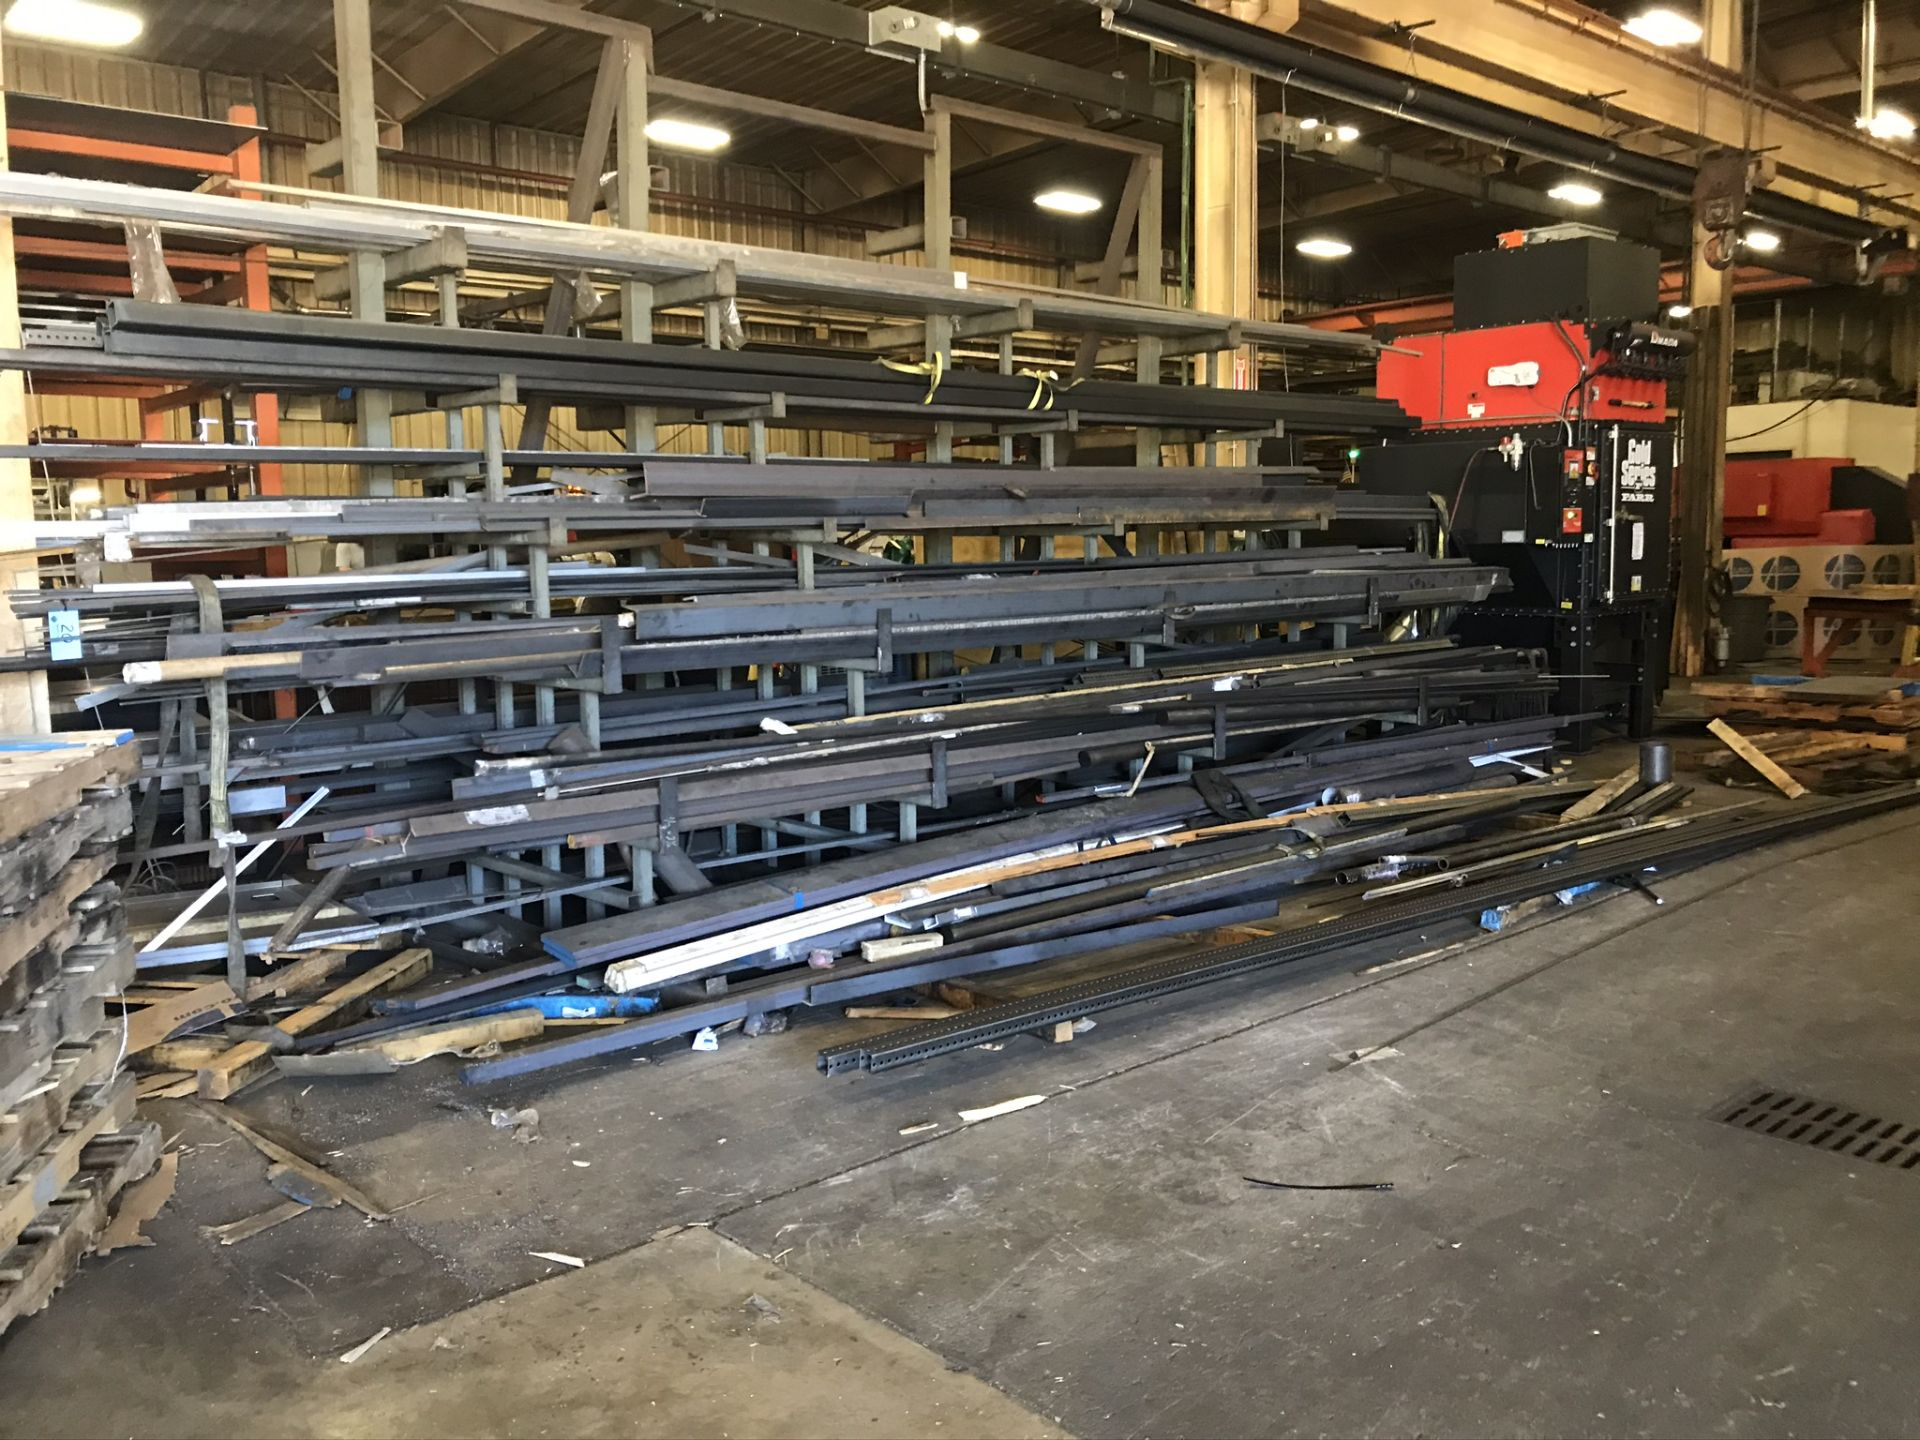 Two Sided Steel Rack Complete with Structural Steel, Bar Stock, Aluminum, Etc. - Image 4 of 6